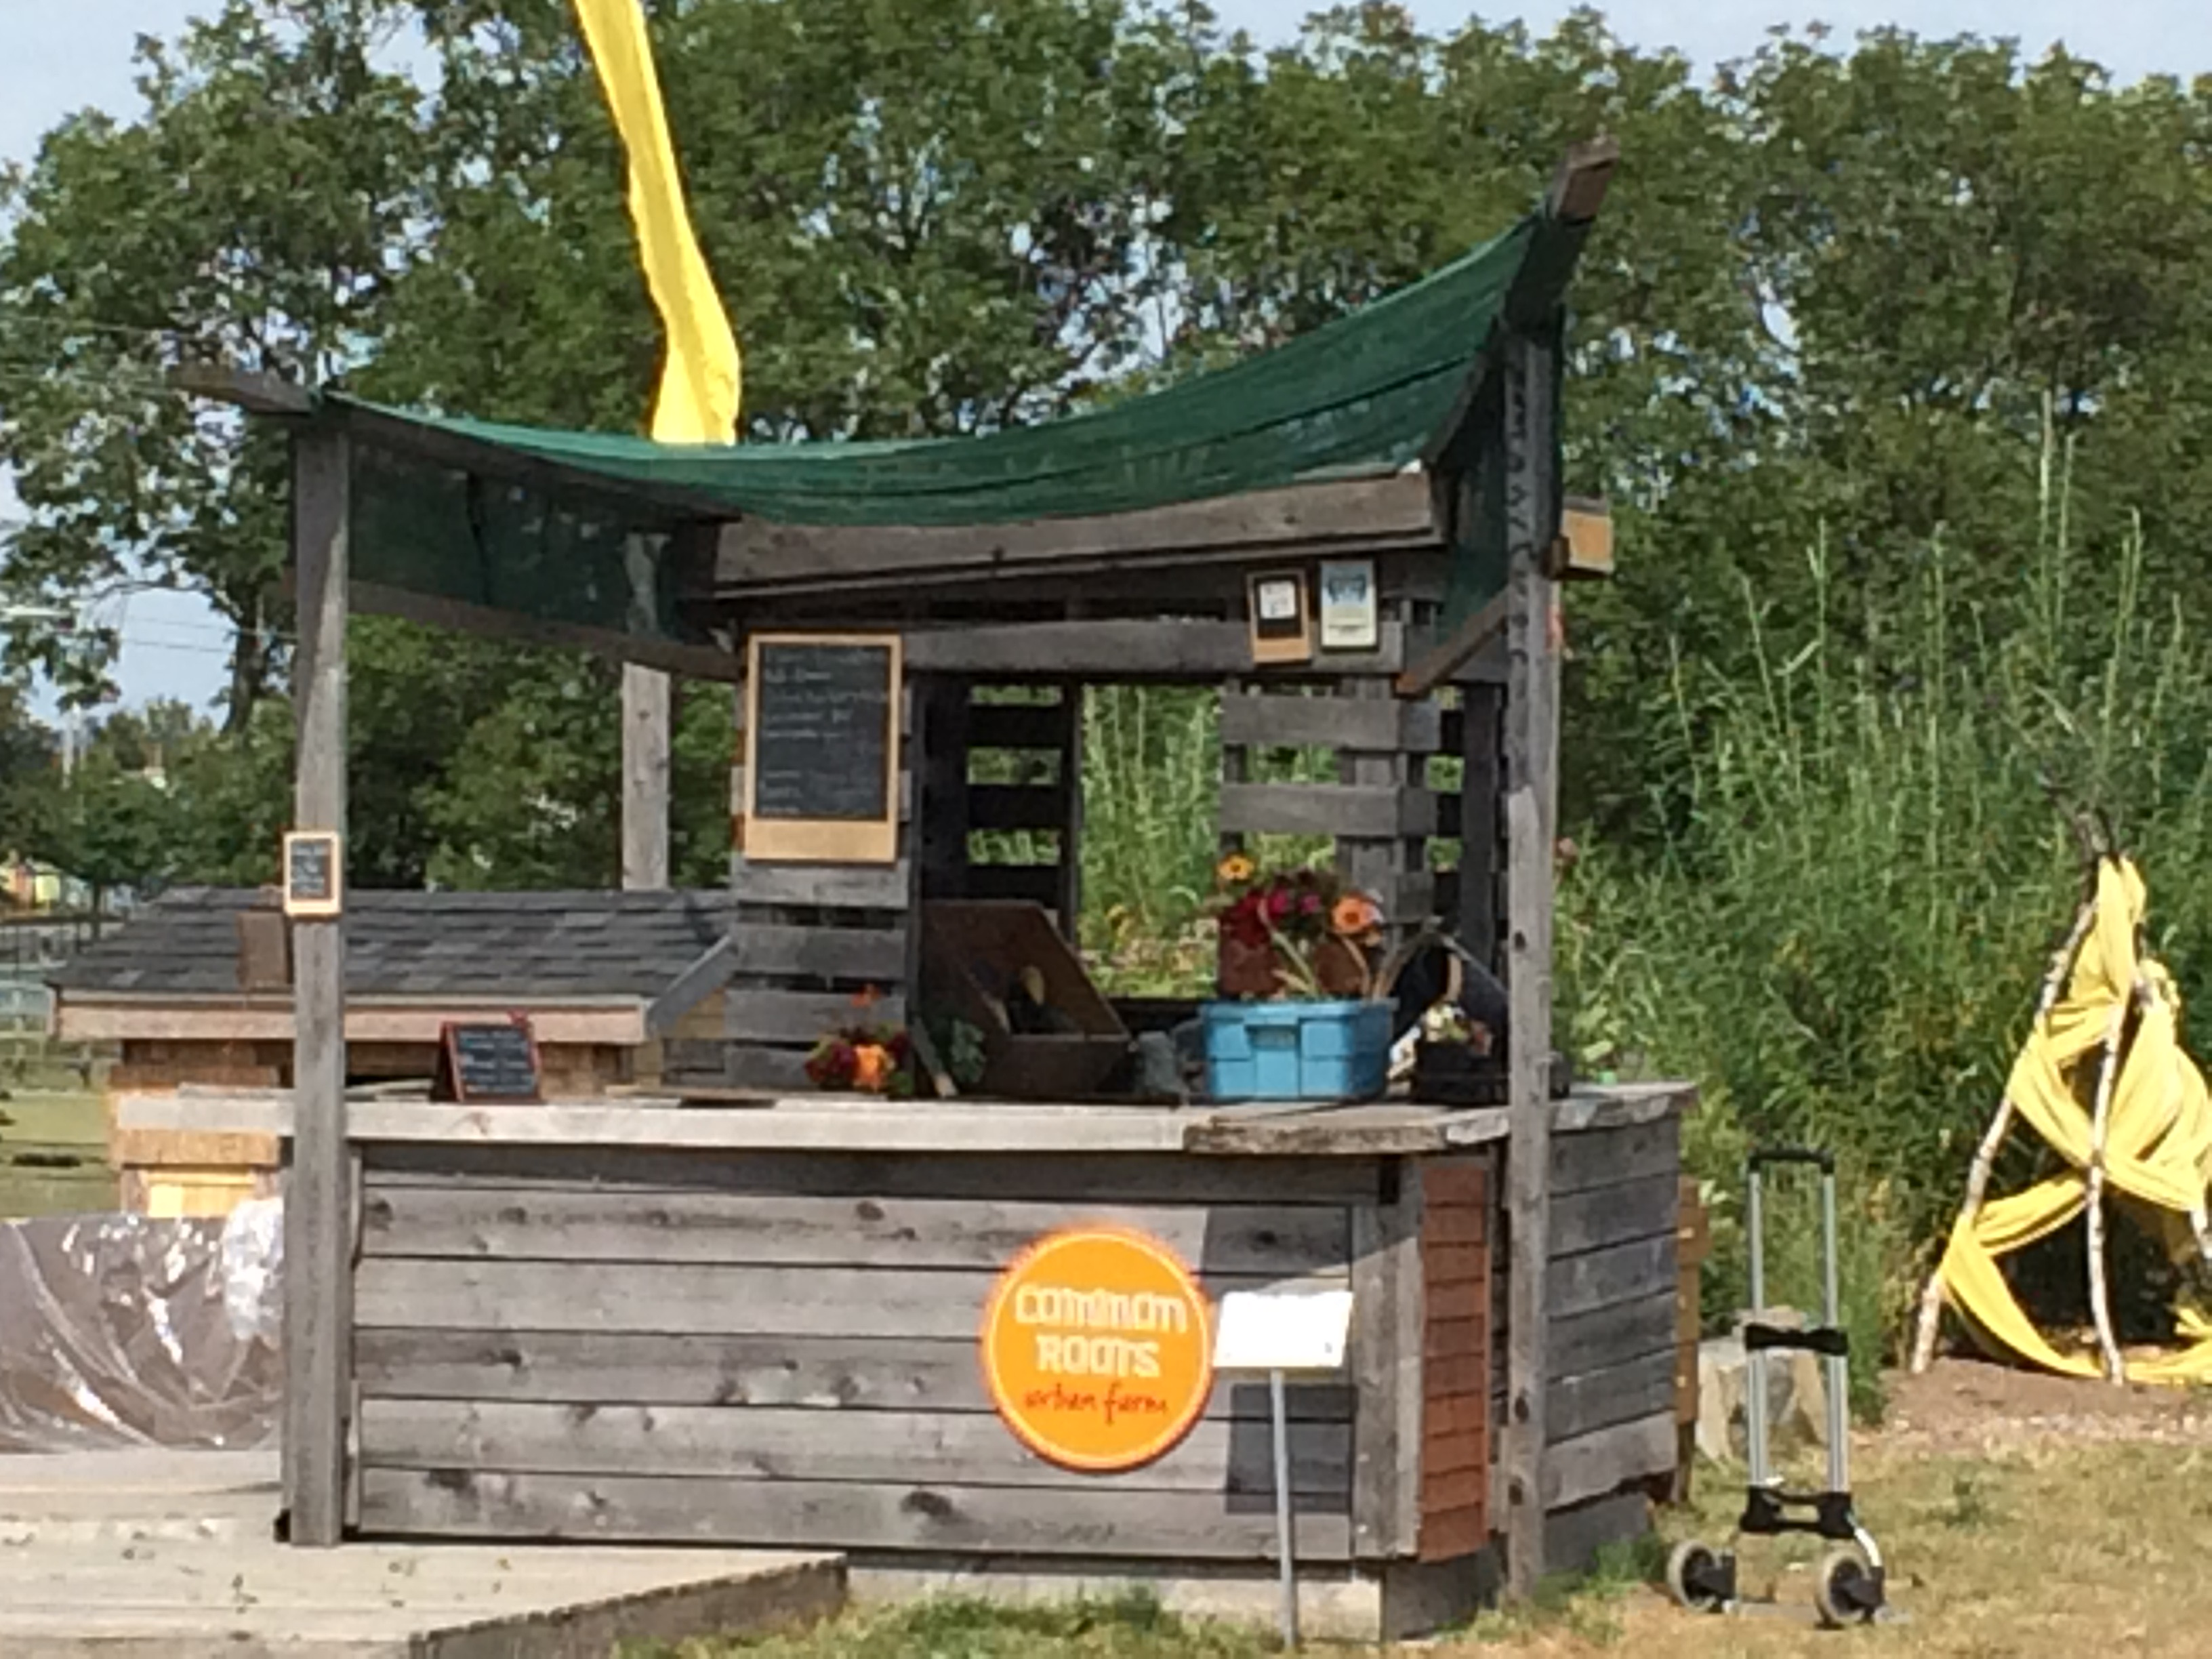 This what our tiny store, our on-farm market stand, looks like.  Don't be afraid to come in!